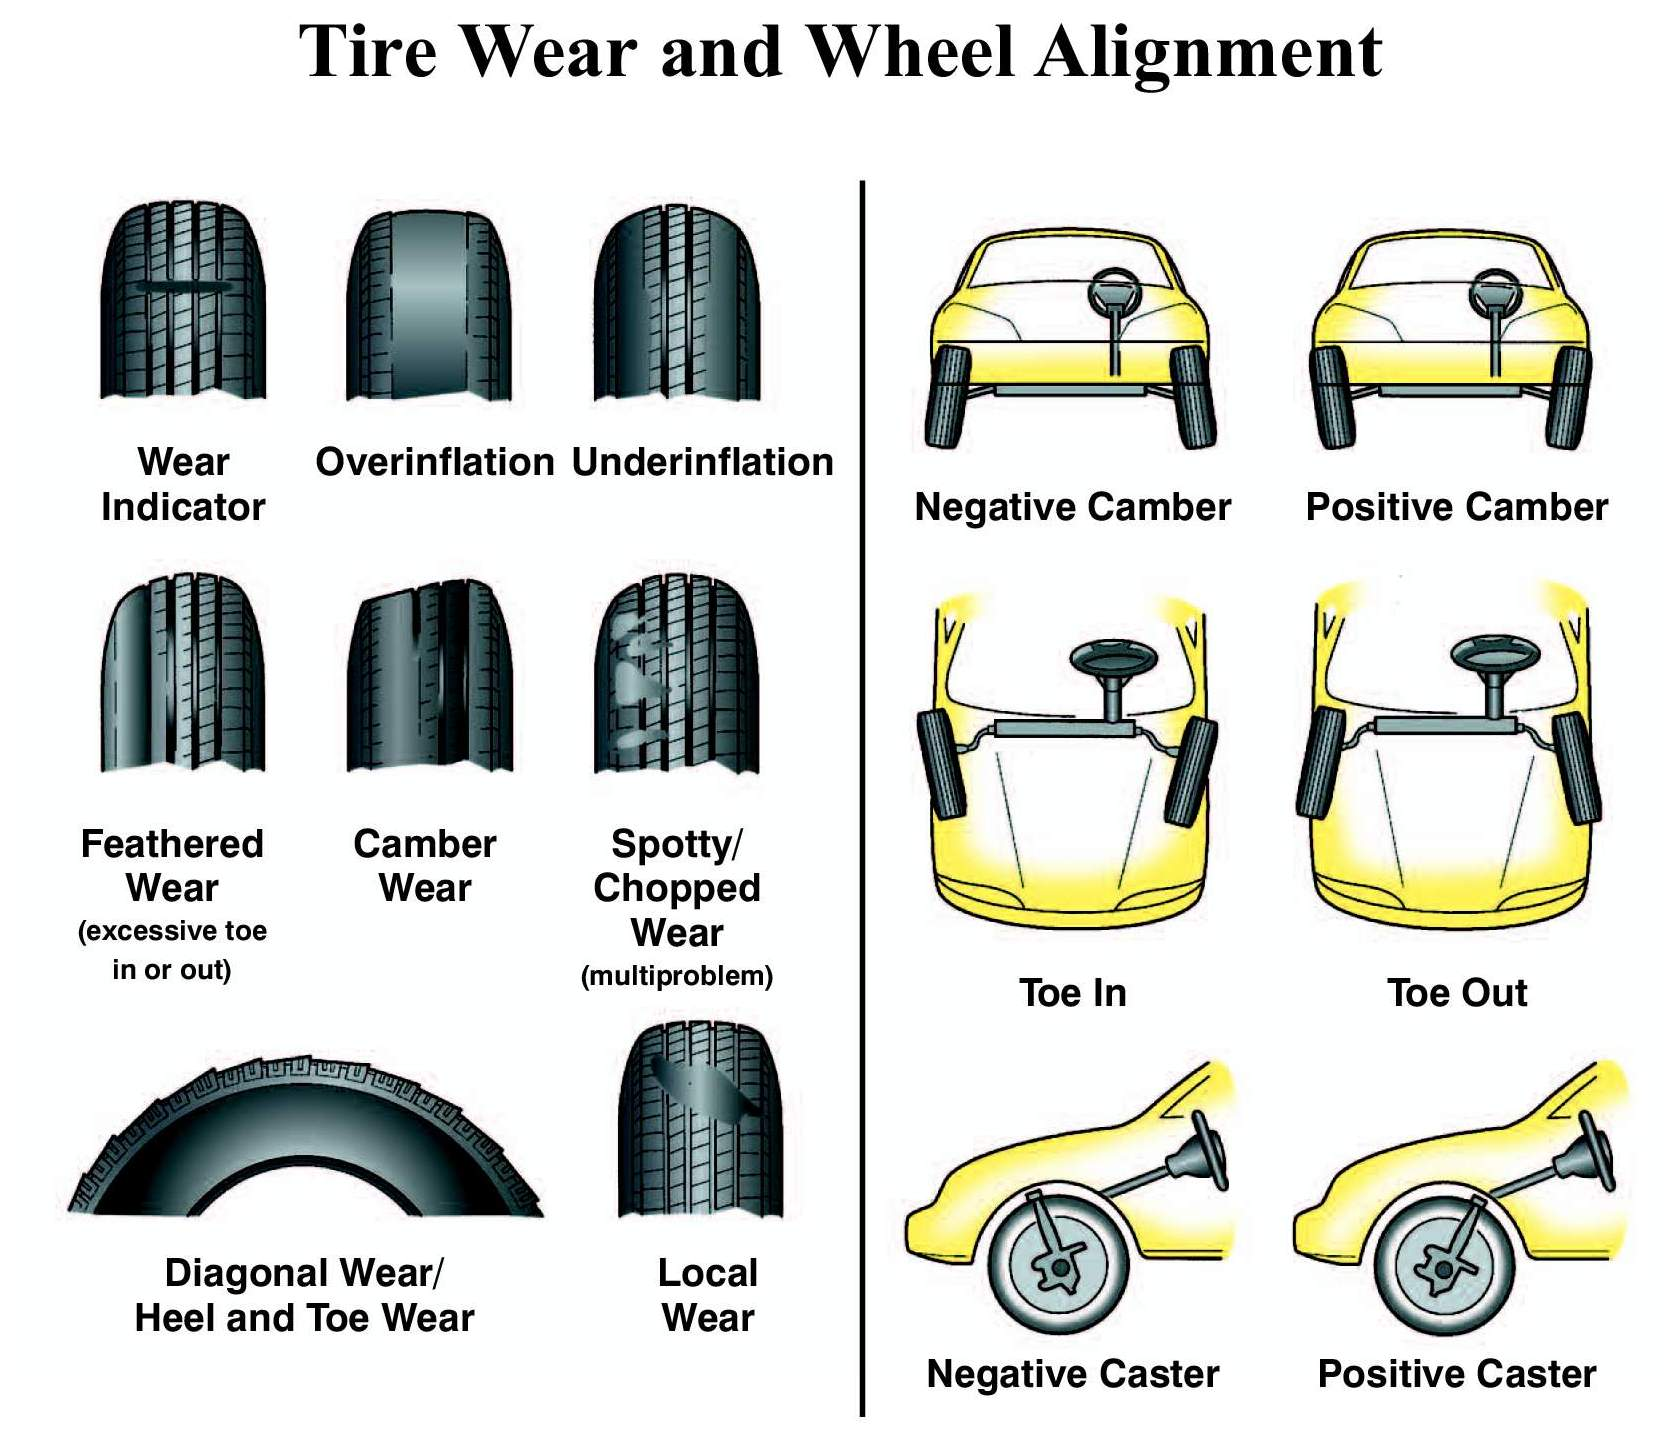 Wheel Alignment wear